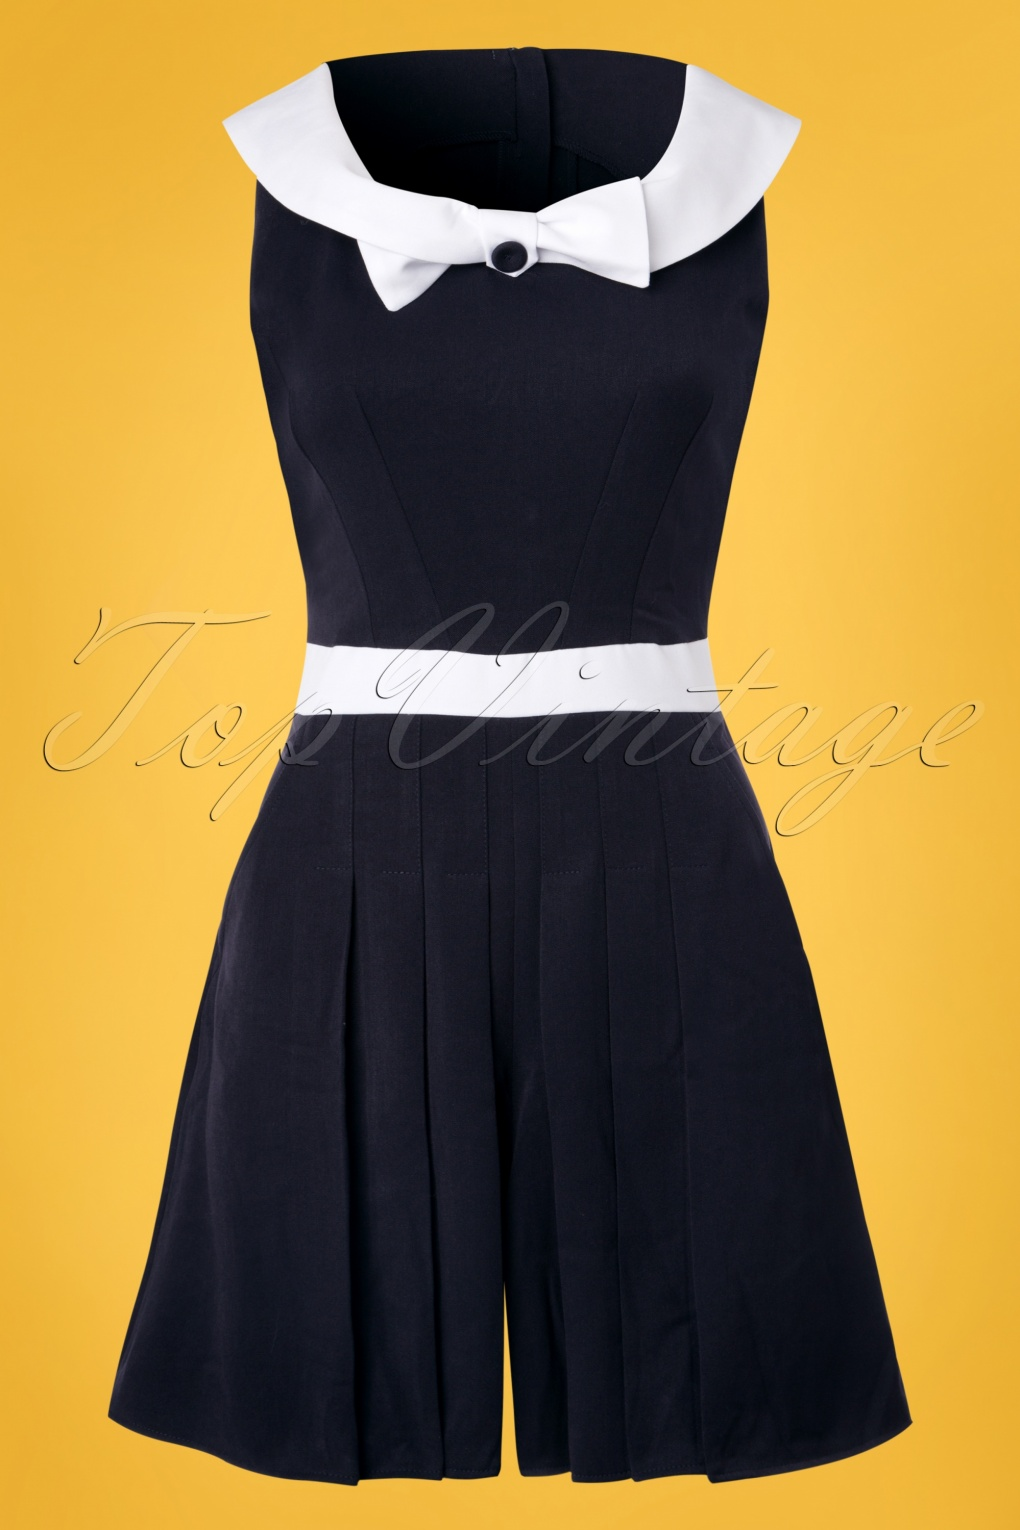 Sailor Dresses, Nautical Dress, Pin Up & WW2 Dresses 50s Maite Lee Playsuit in Navy and White £81.95 AT vintagedancer.com